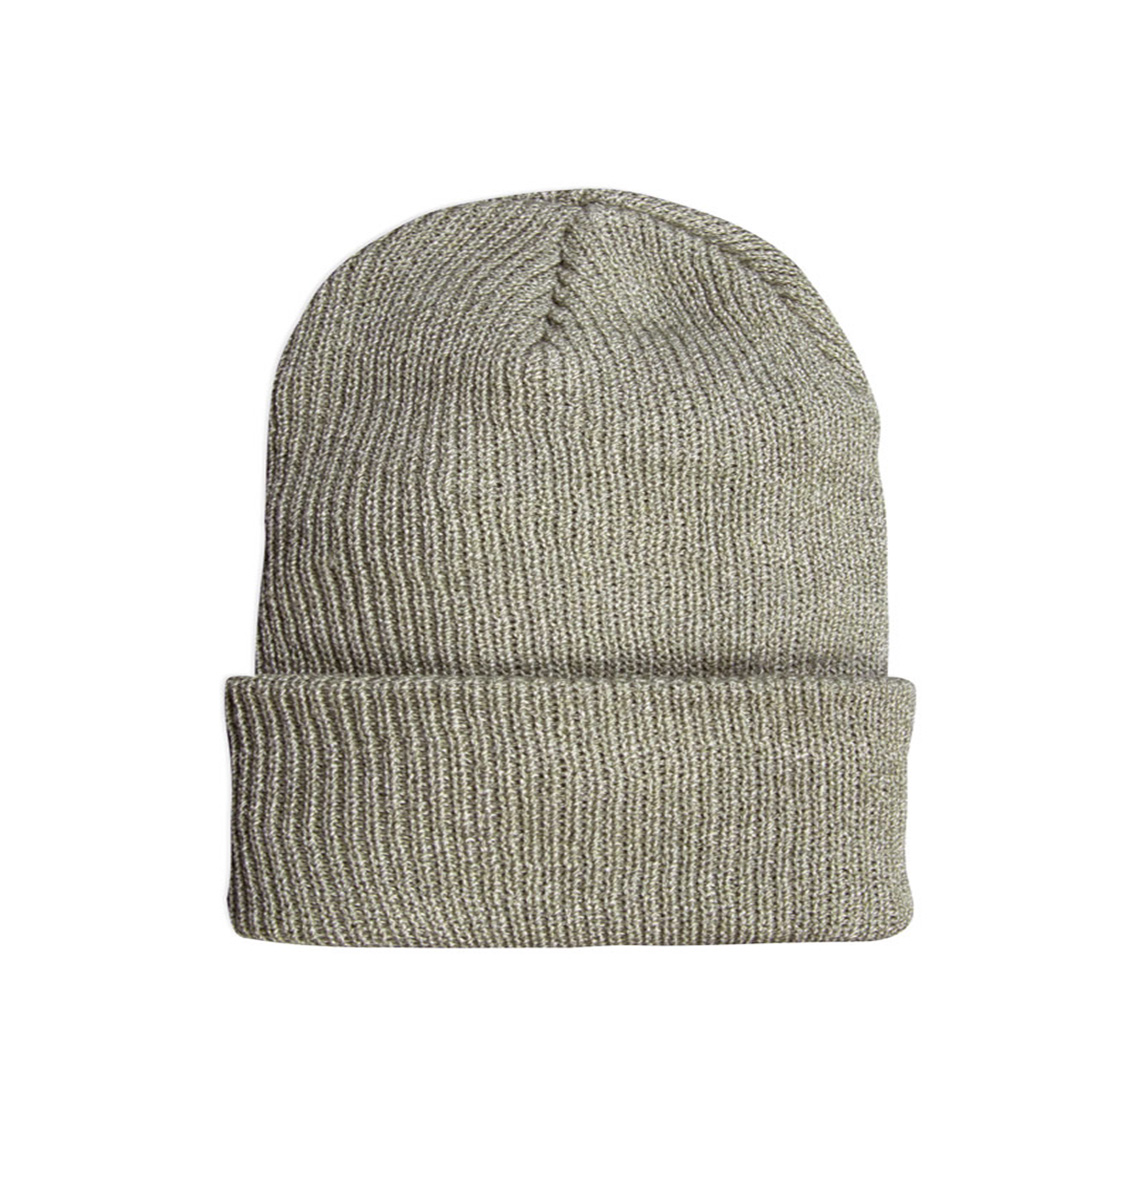 Beanie [Pack of 12]